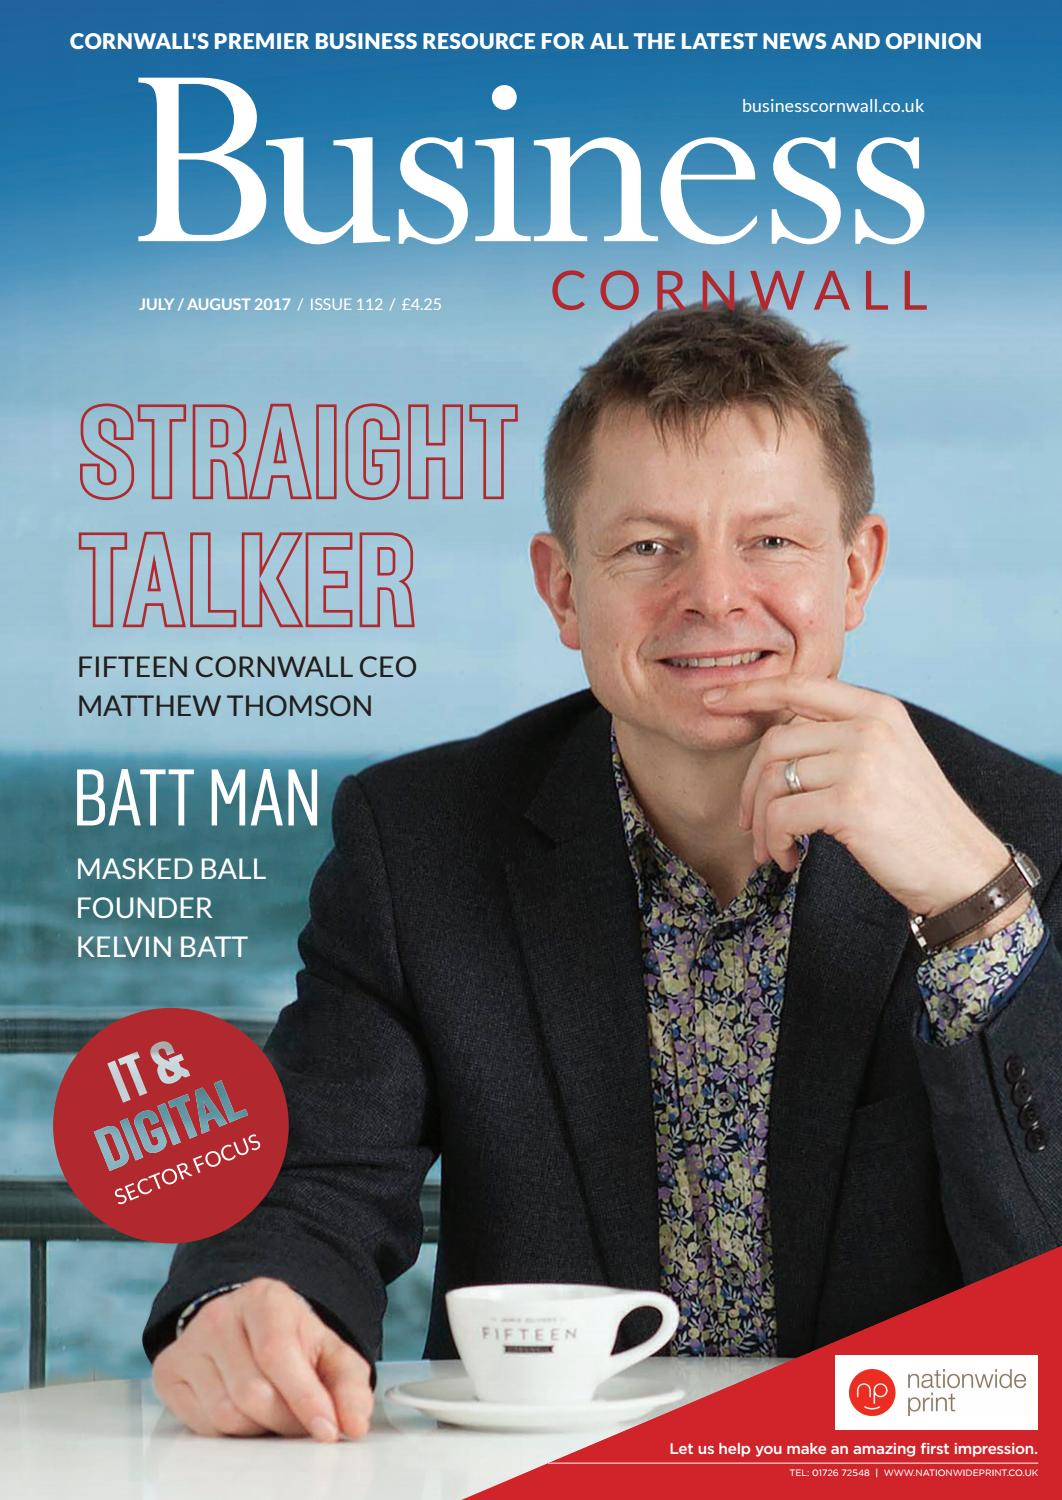 Business Cornwall July/Aug 17 by Business Cornwall - issuu